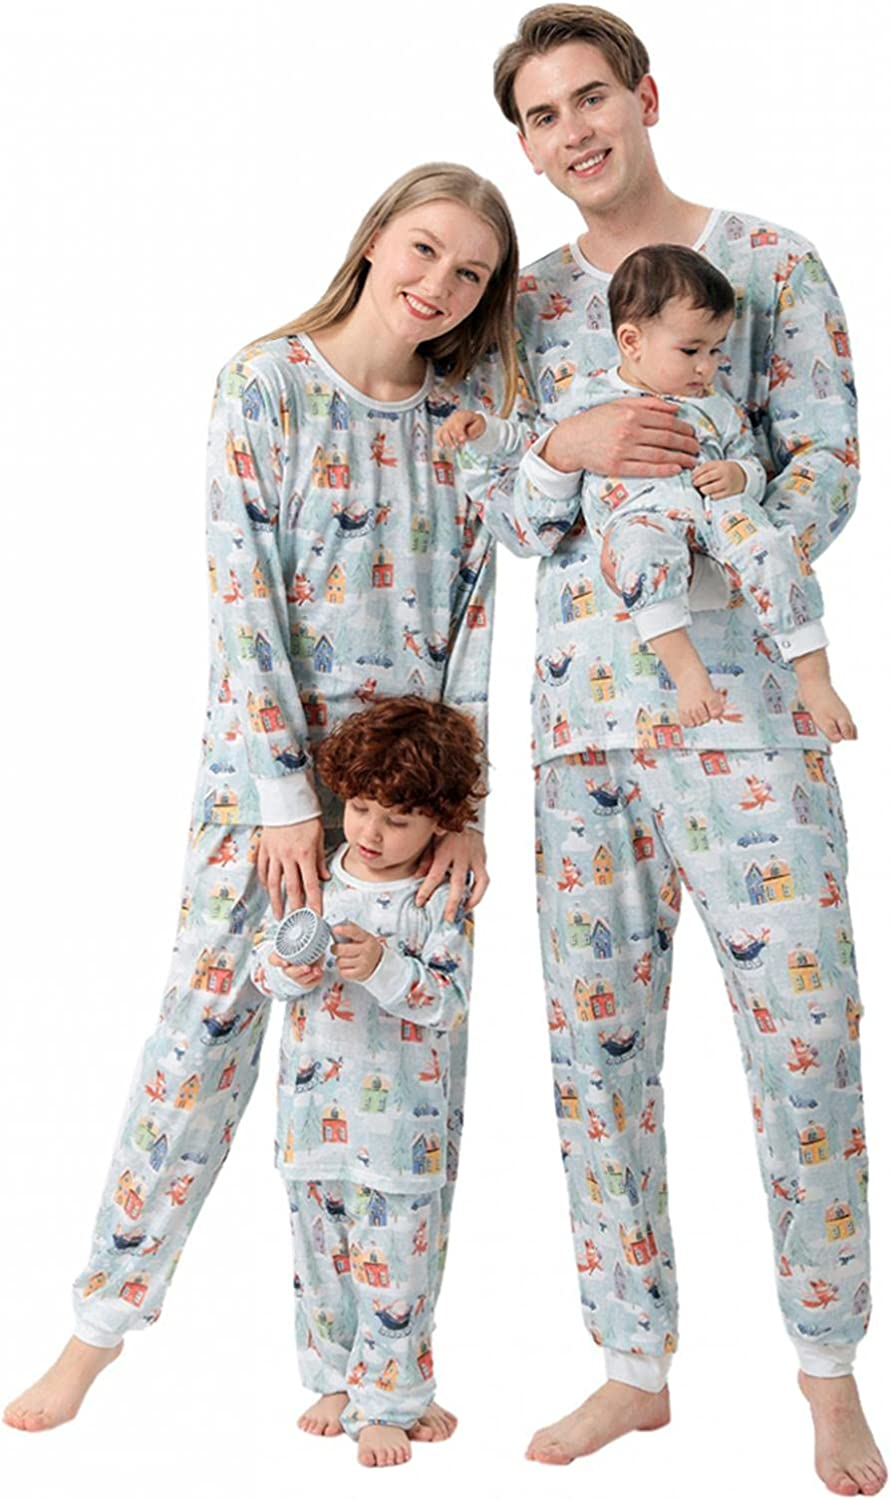 Family Matching Pajamas Set Cheap sale Christmas Discount is also underway Tops Pjs Sleeve Print Long